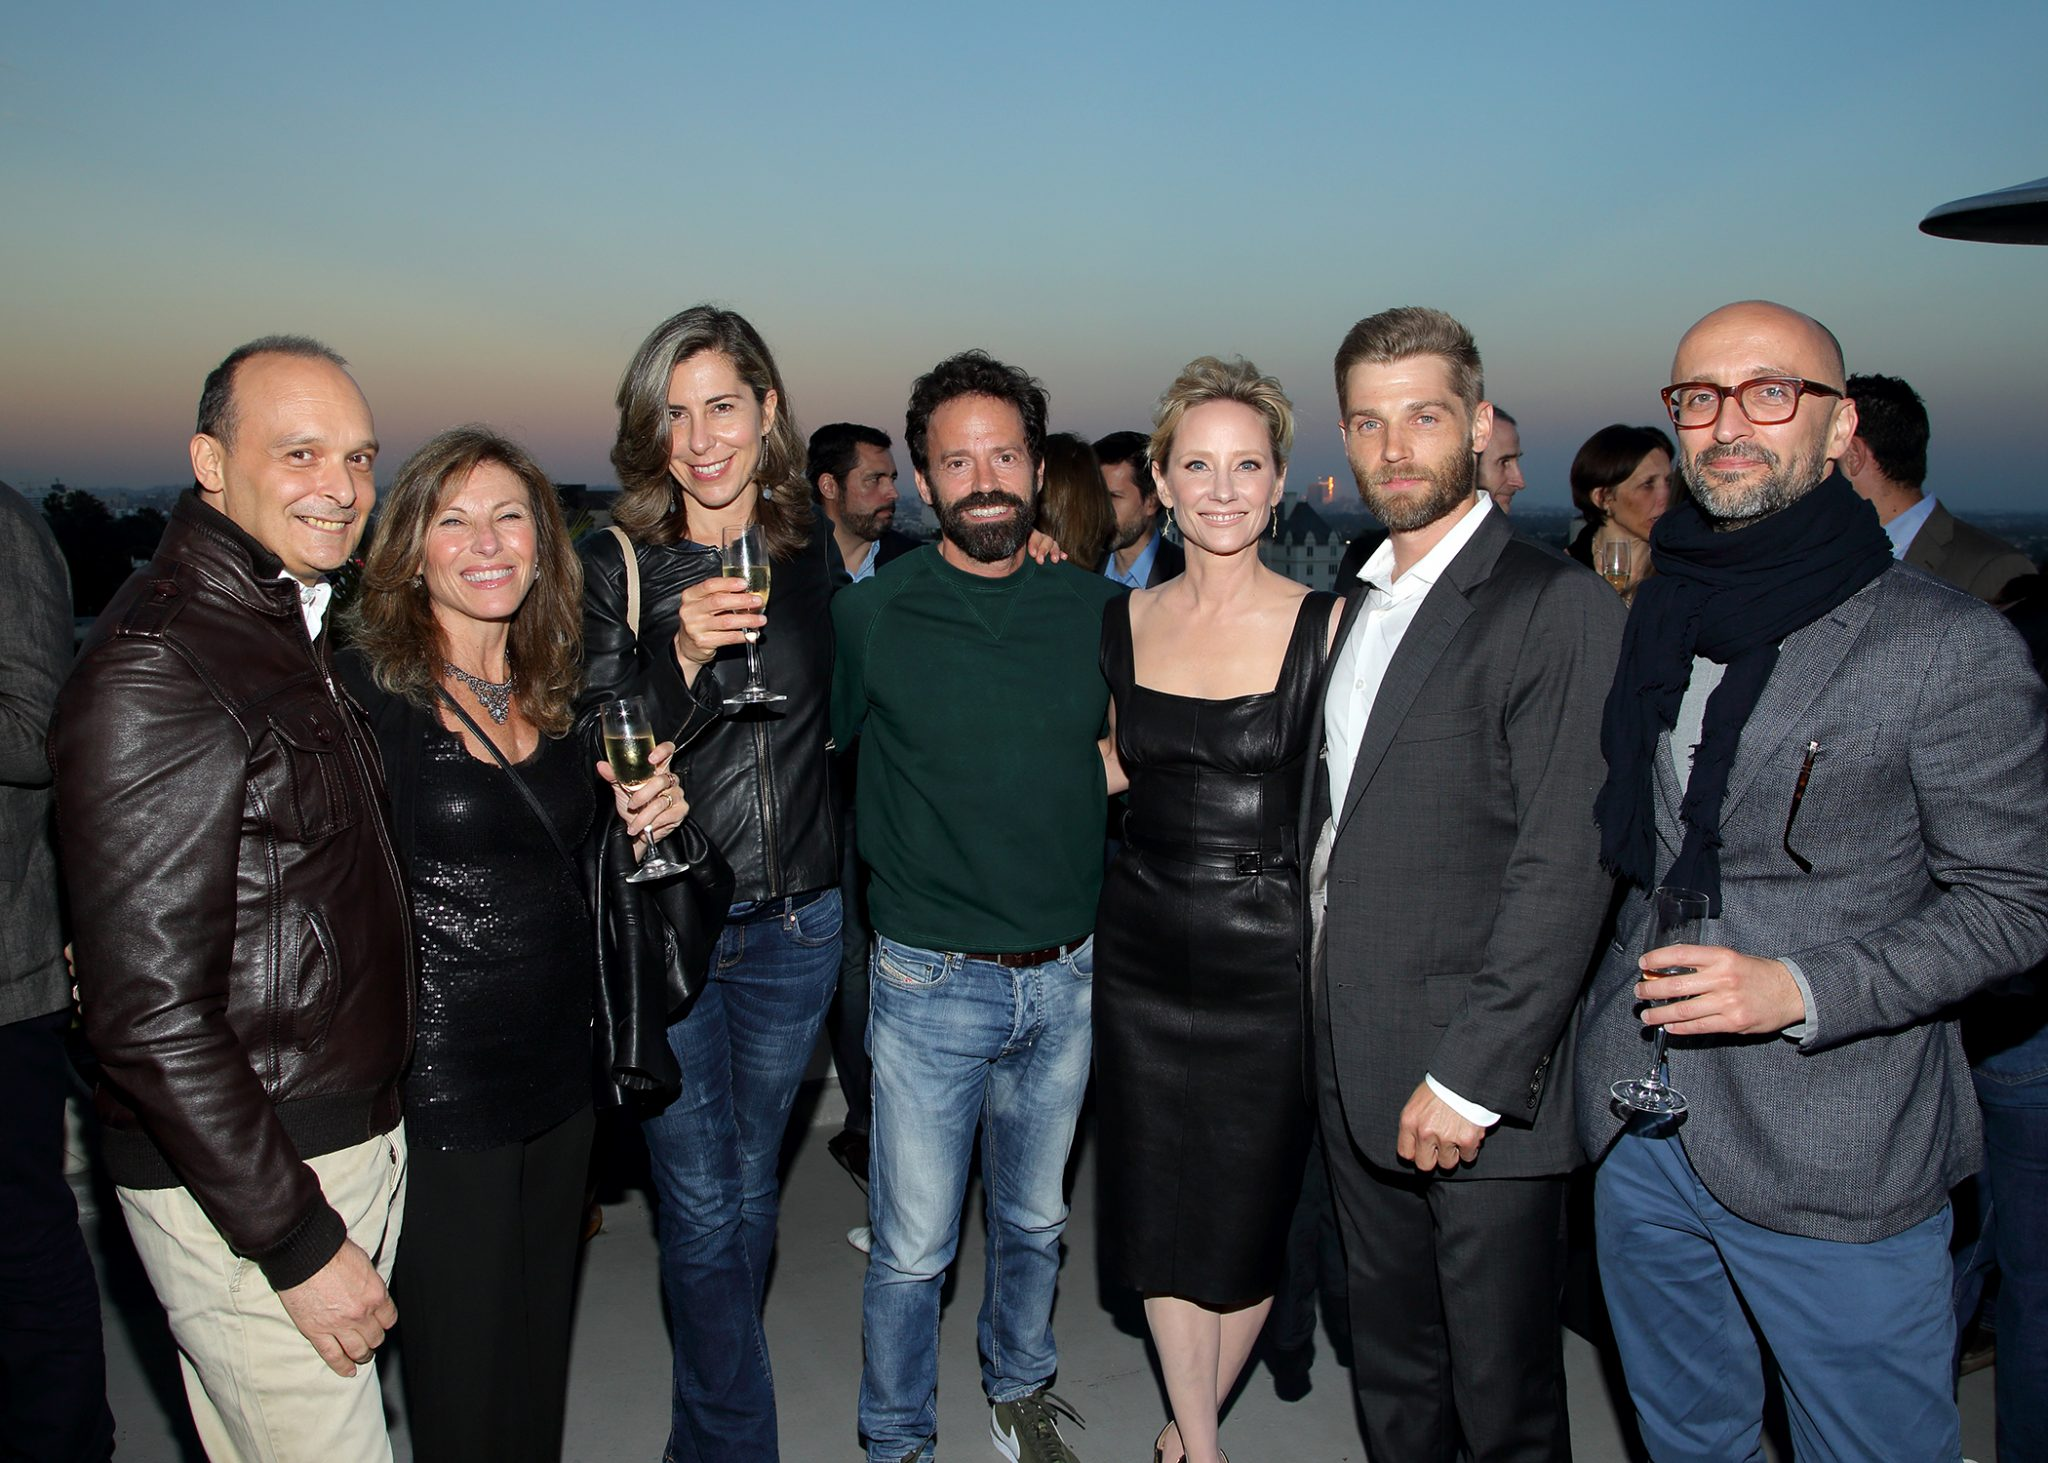 Anne Heche and Mike Vogel (The Brave) mingle with international TV buyers at NBCU's LA Screenings cocktail at the Chateau Marmont on Tuesday, May 23. (Greg Grudt/Mathew Imaging)